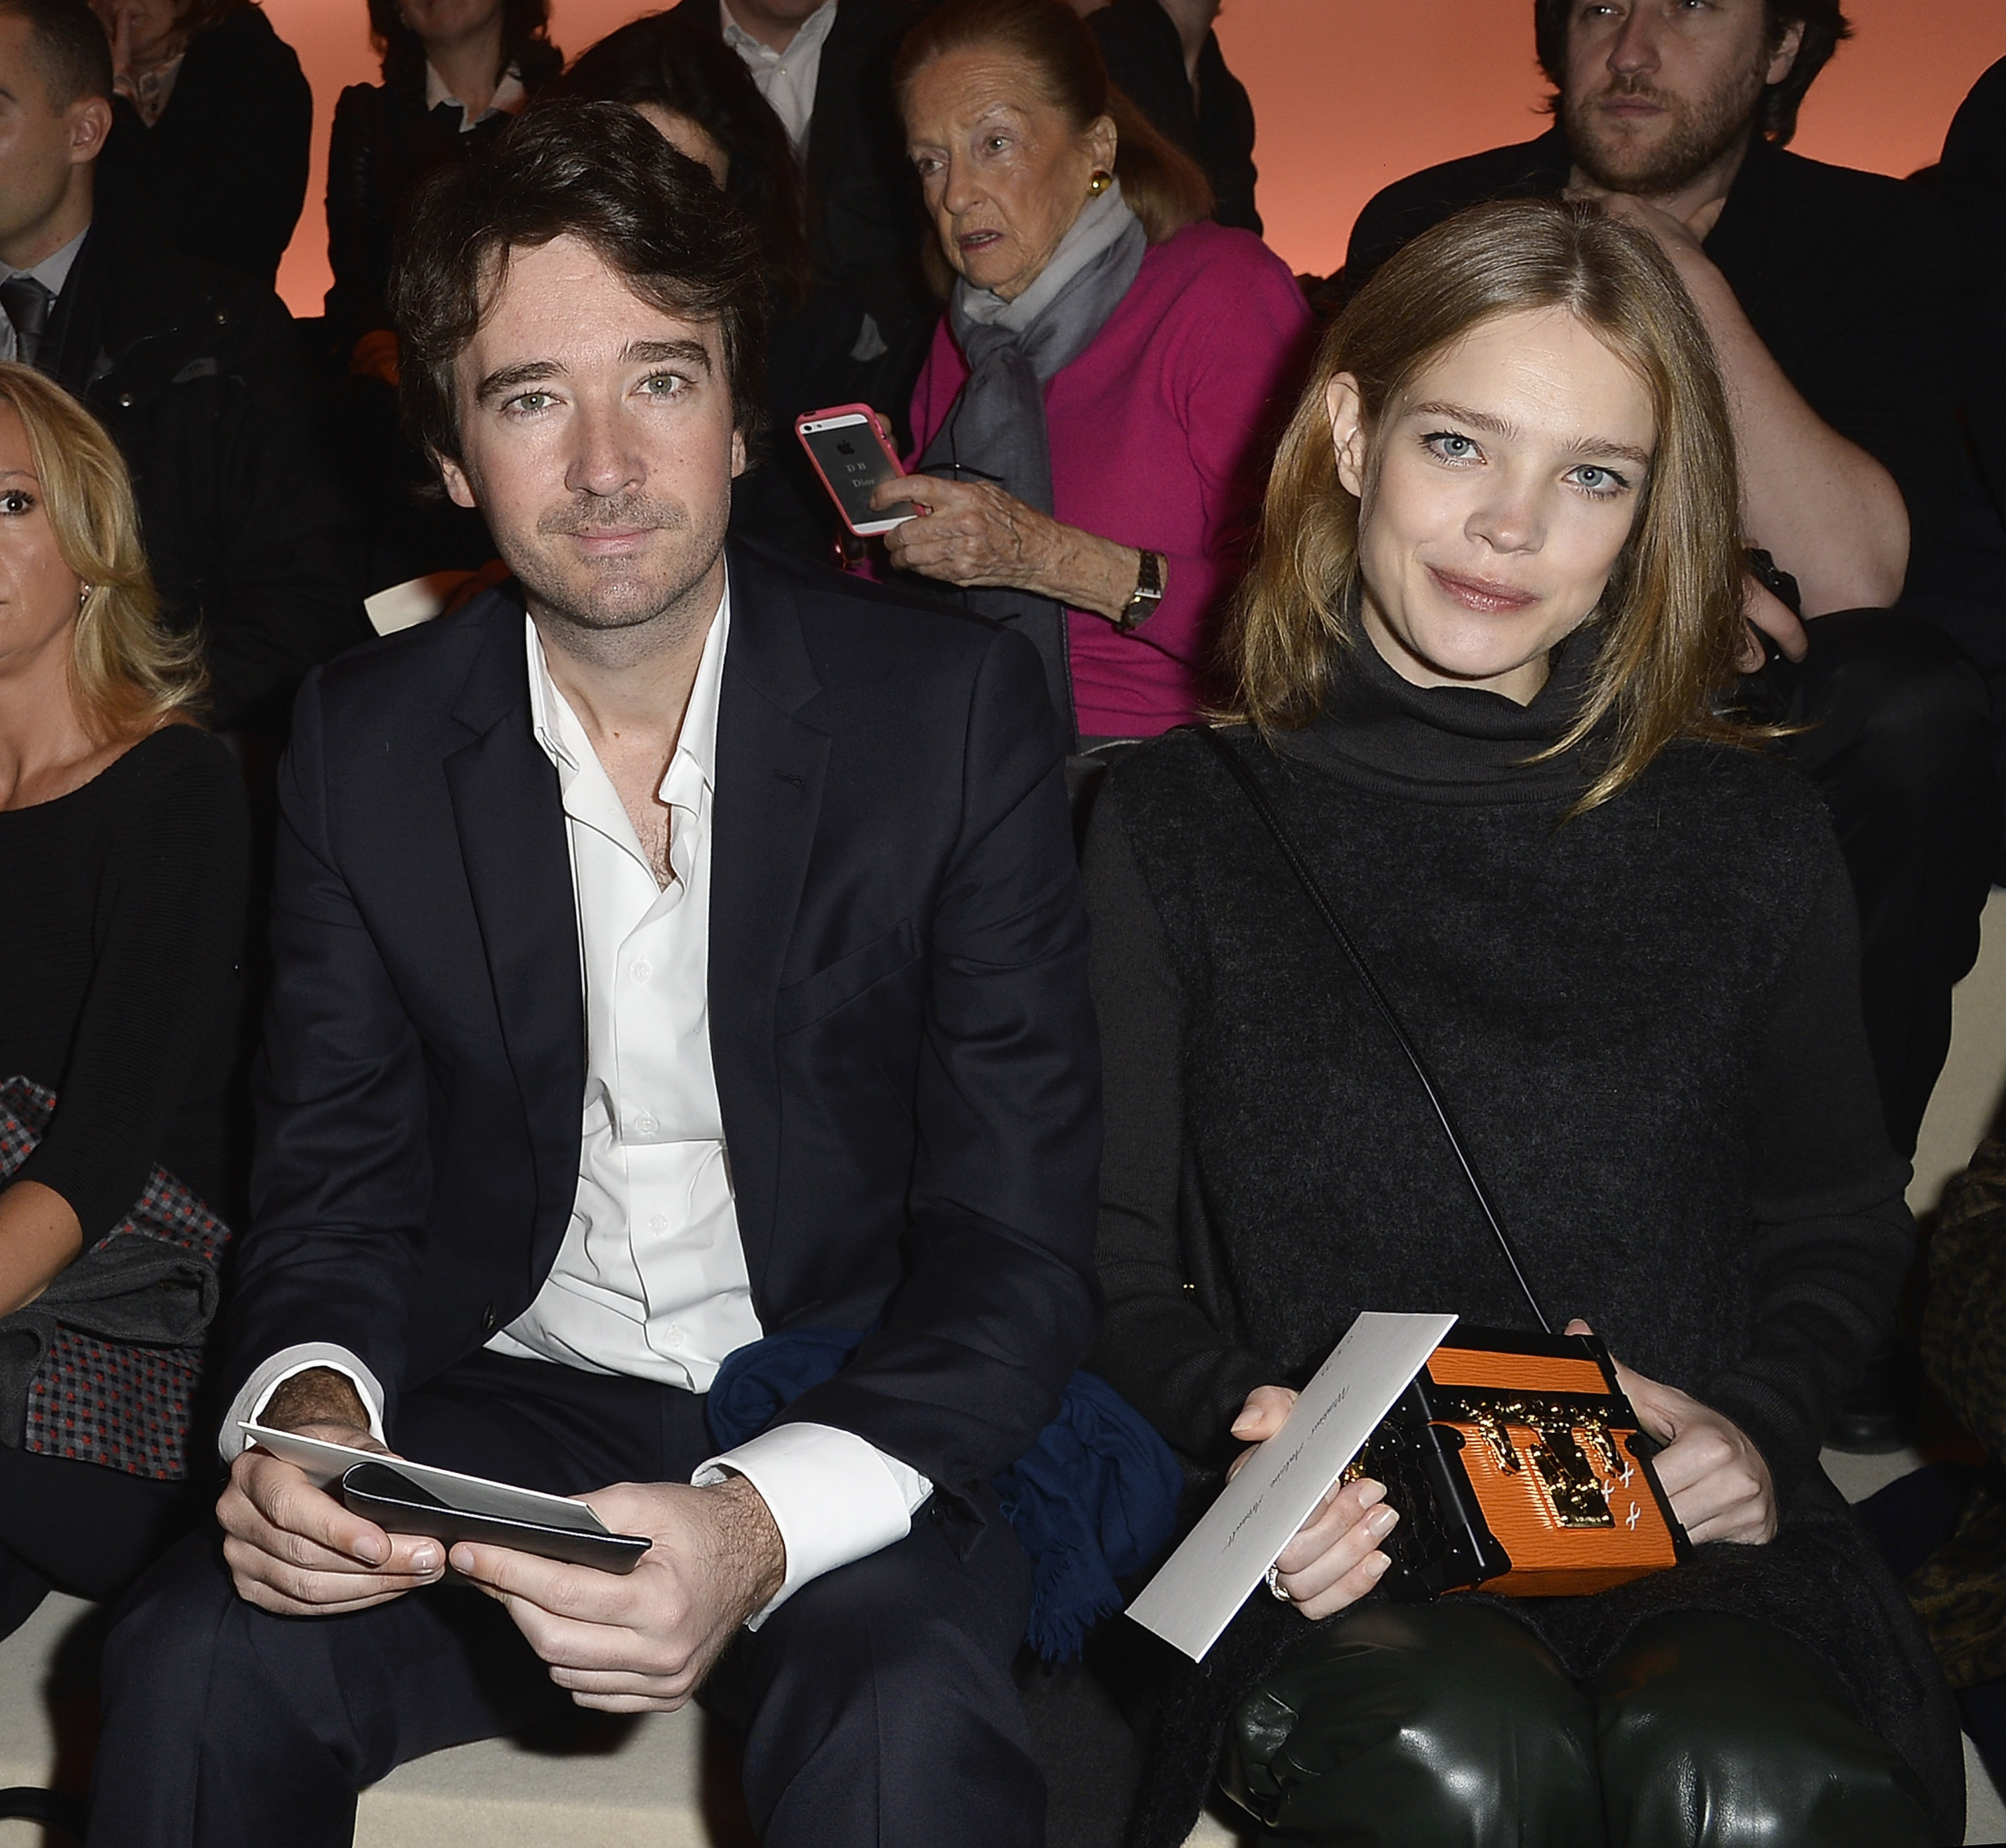 PARIS, FRANCE - MARCH 05:  Antoine Arnault and Natalia Vodianova attend the Louis Vuitton show as part of the Paris Fashion Week Womenswear Fall/Winter 2014-2015 on March 5, 2014 in Paris, France.  (Photo by Pascal Le Segretain/Getty Images)